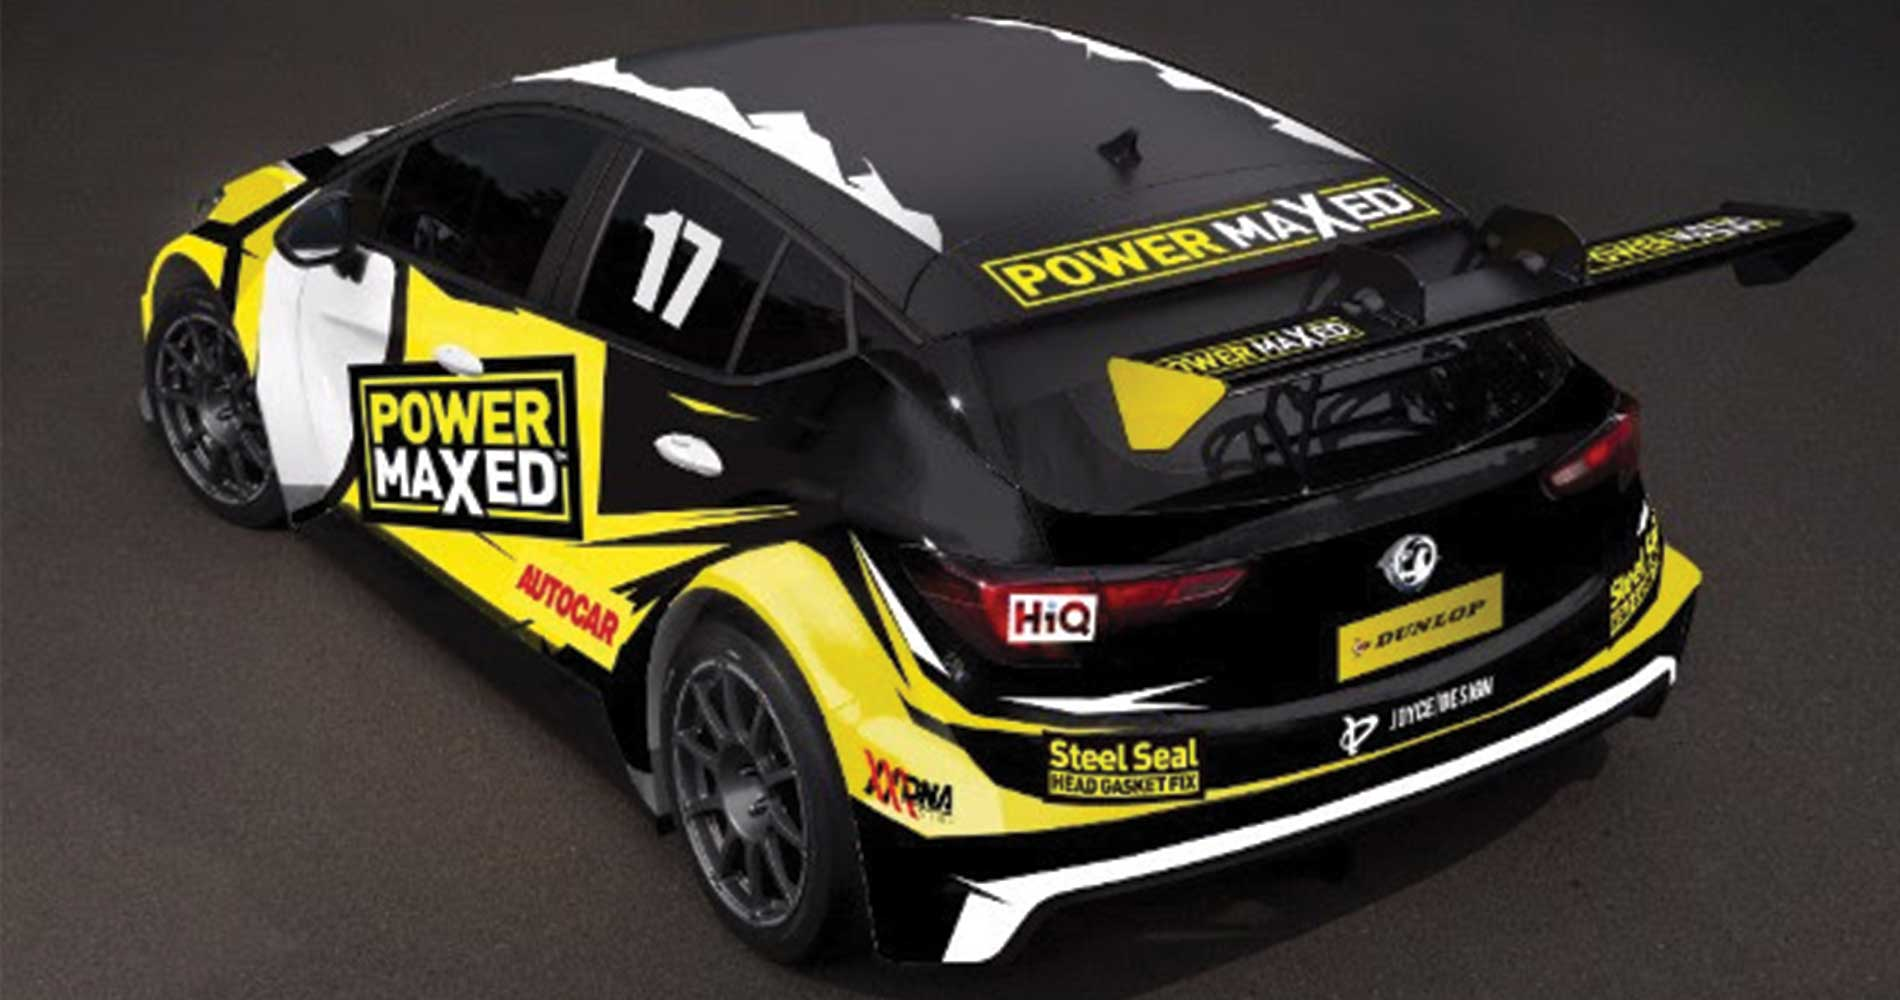 power-maxed-racing-and-vauxhall-in-btcc-from-2017-motorsportdays-test-days-2